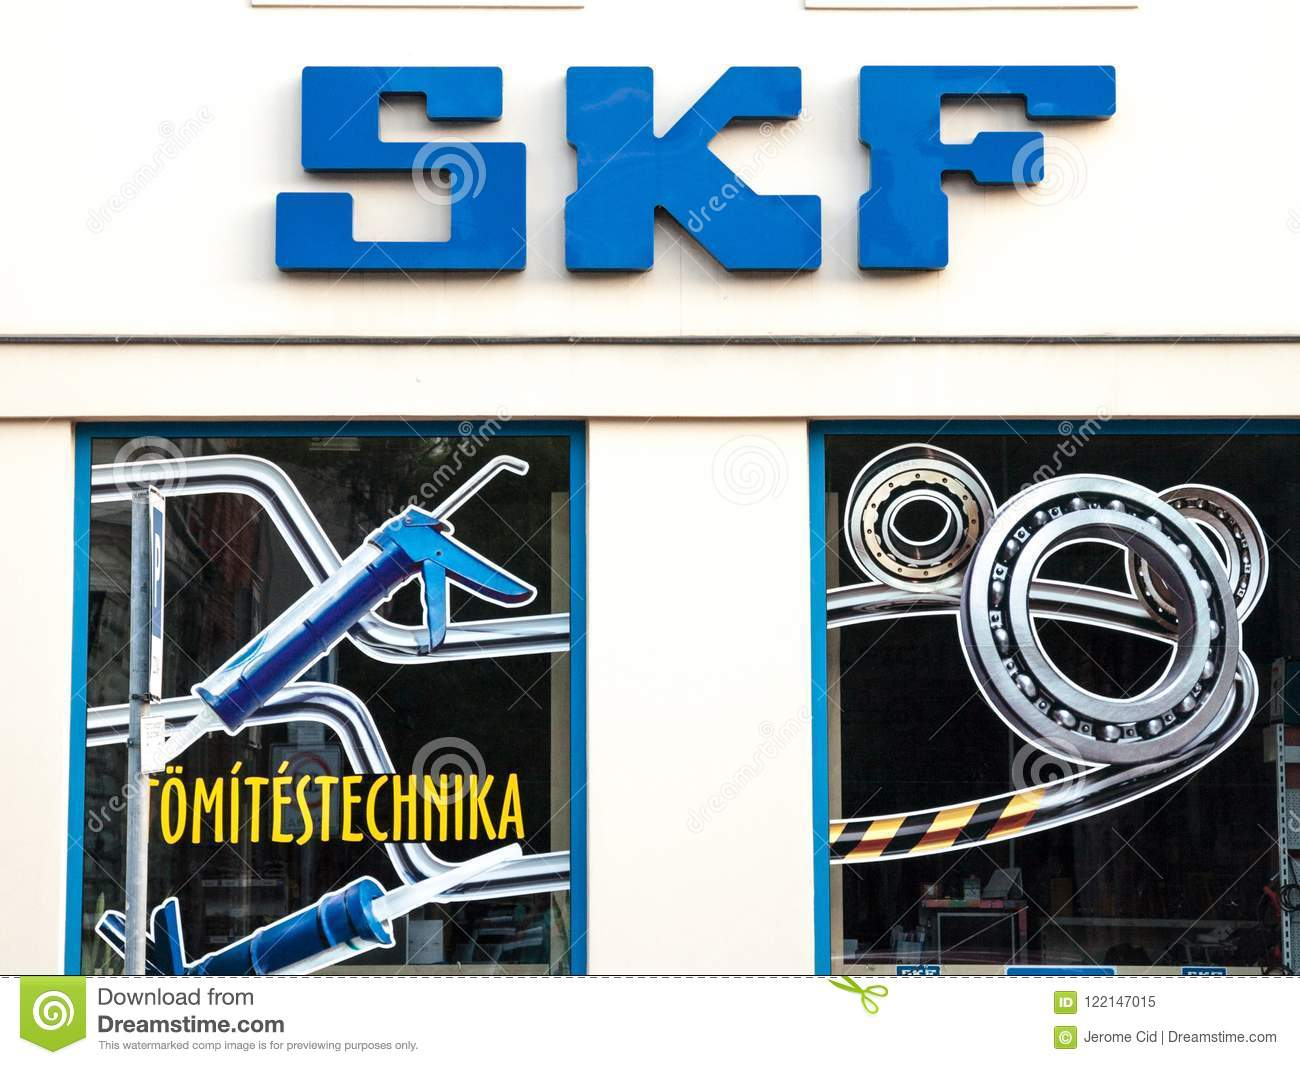 SKF Logo On Their Main Shop For Szeged  SKF, From Sweden, Is The